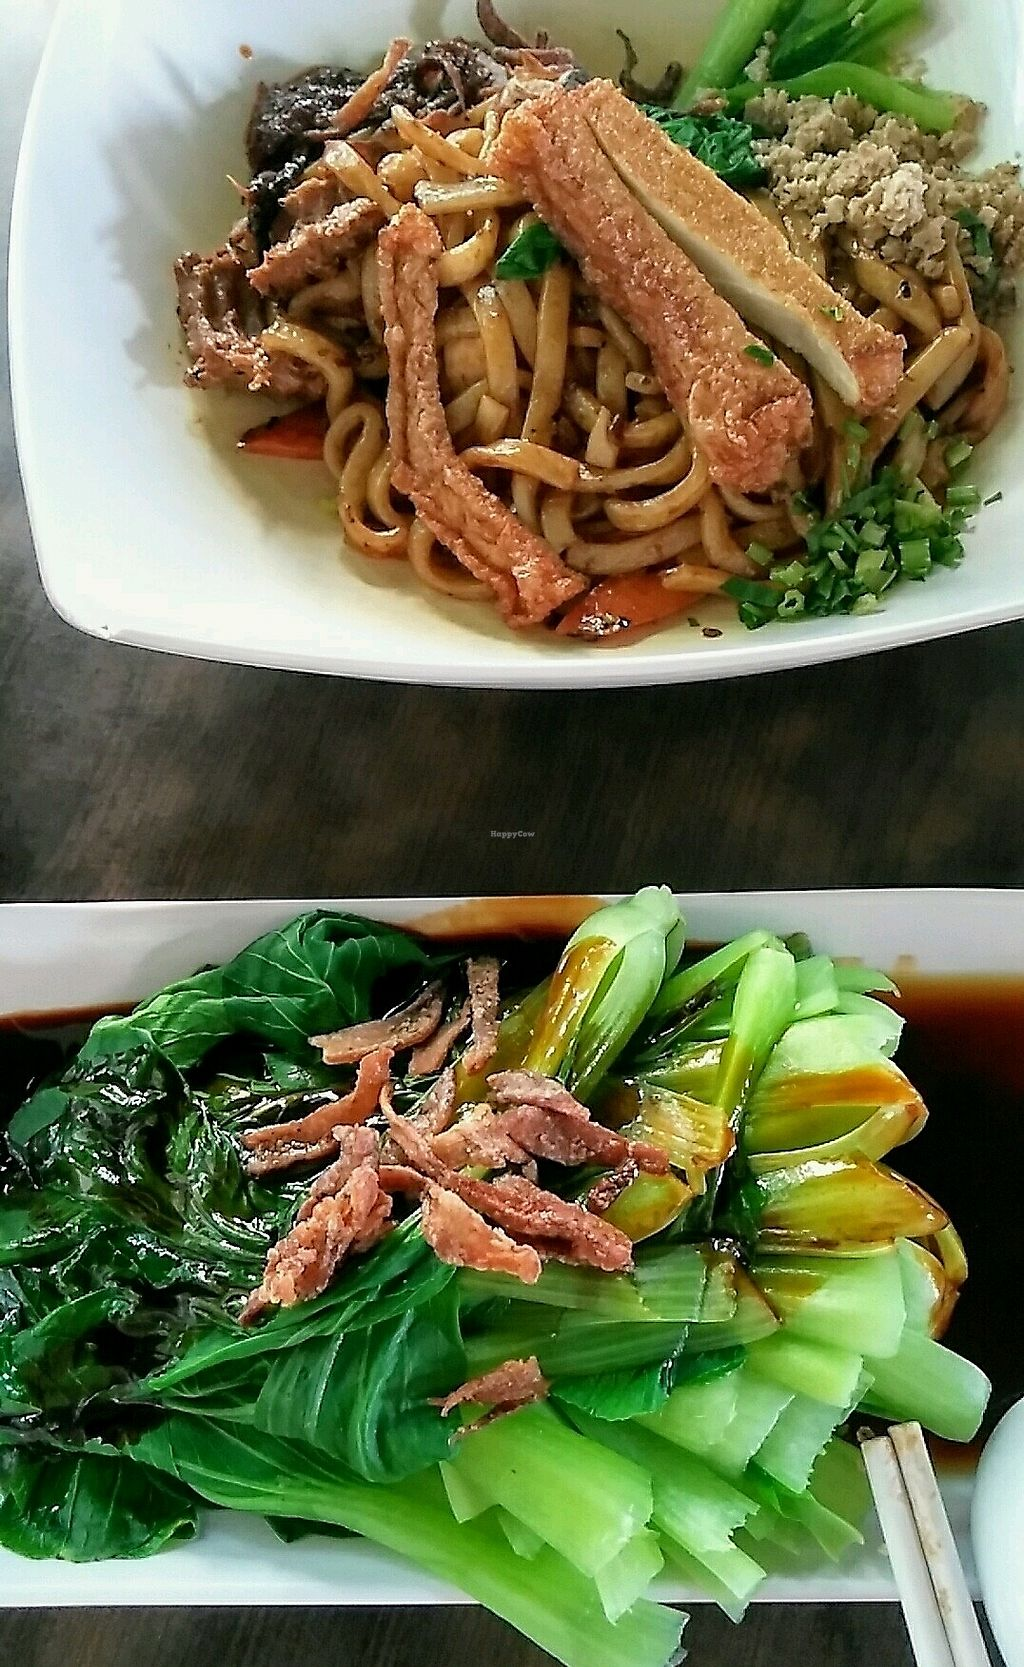 """Photo of Rice House  by <a href=""""/members/profile/taro1000"""">taro1000</a> <br/>Noodle & green veggies <br/> January 27, 2018  - <a href='/contact/abuse/image/9109/351394'>Report</a>"""